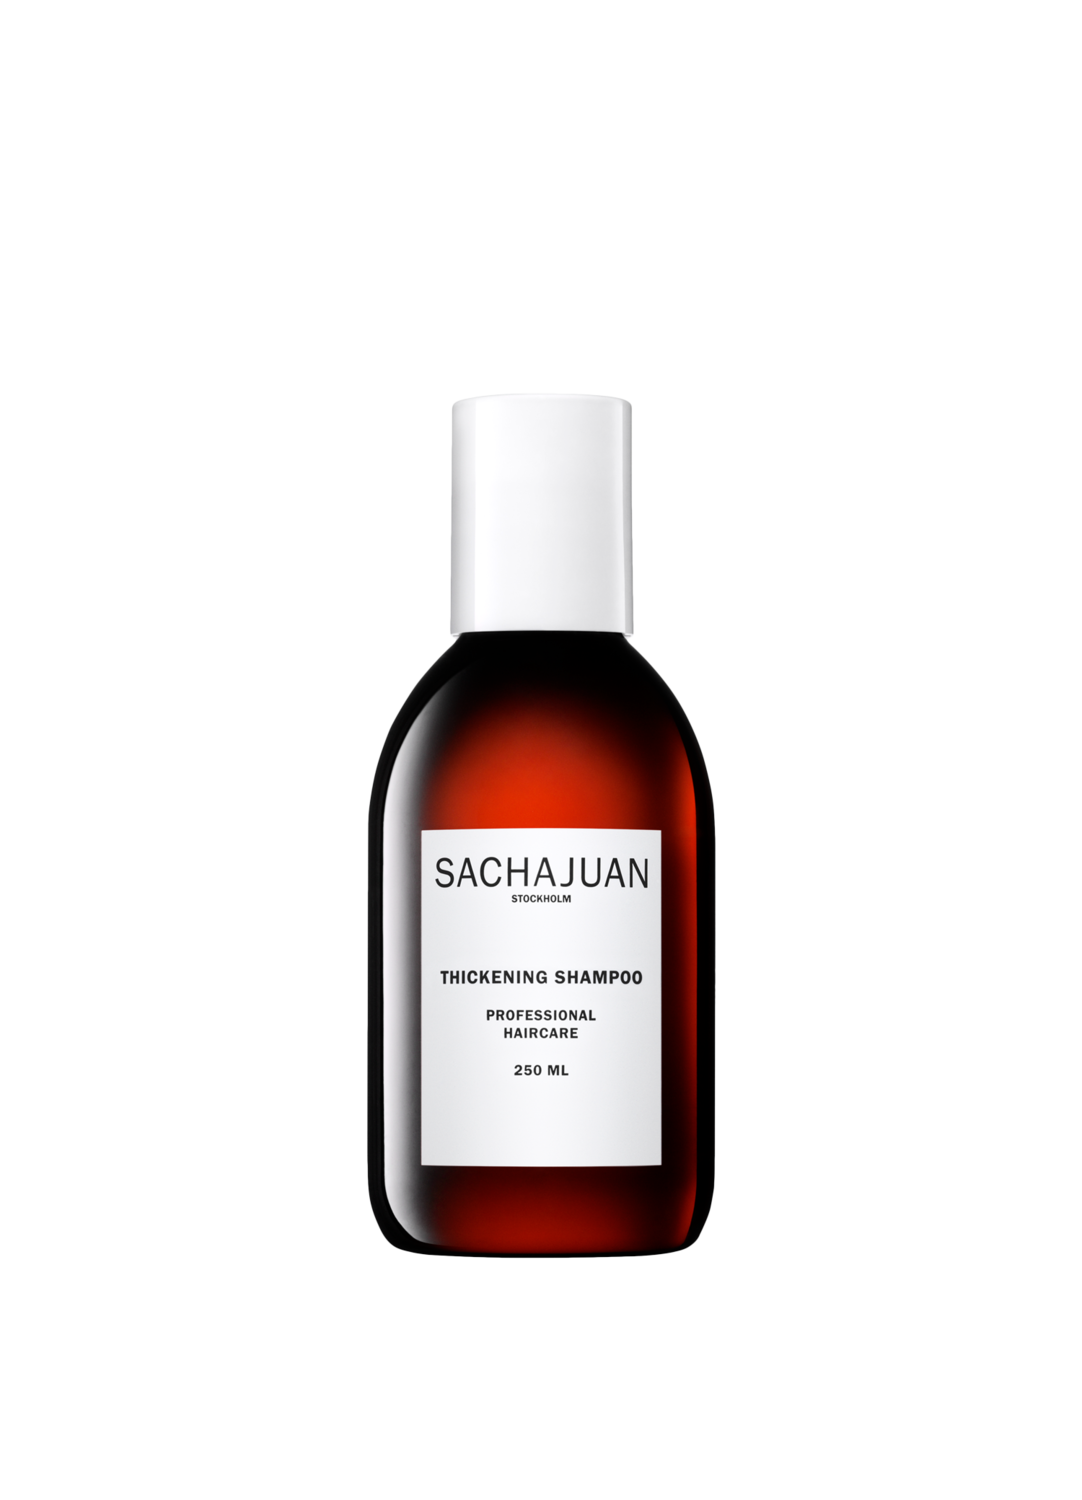 sachajuan | thickening shampoo[product_type ]sachajuan - Kiss and Makeup